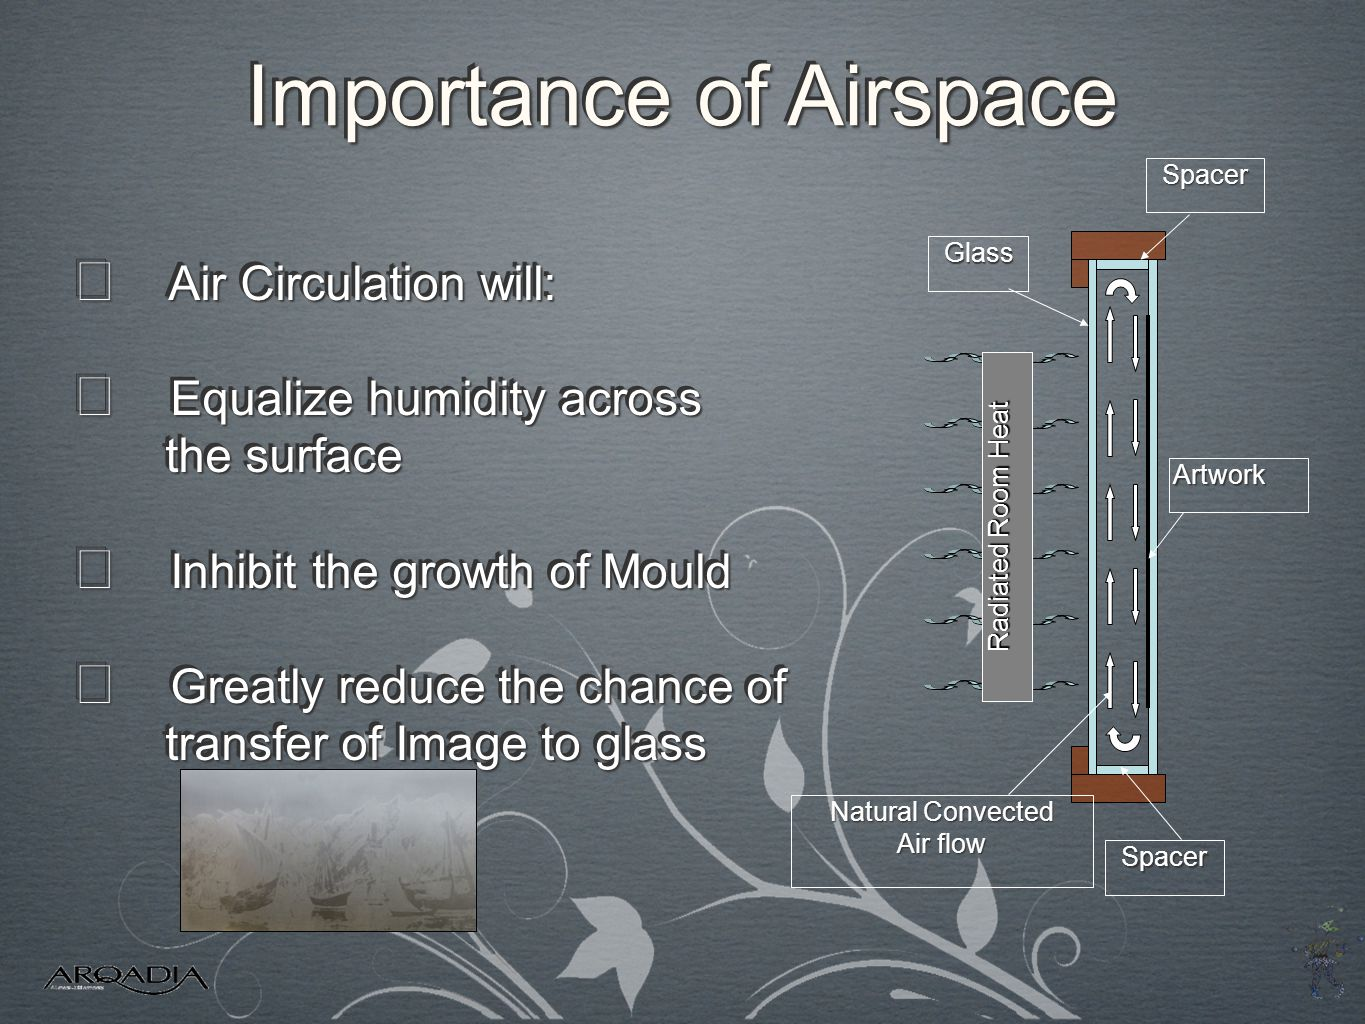 Importance of Airspace